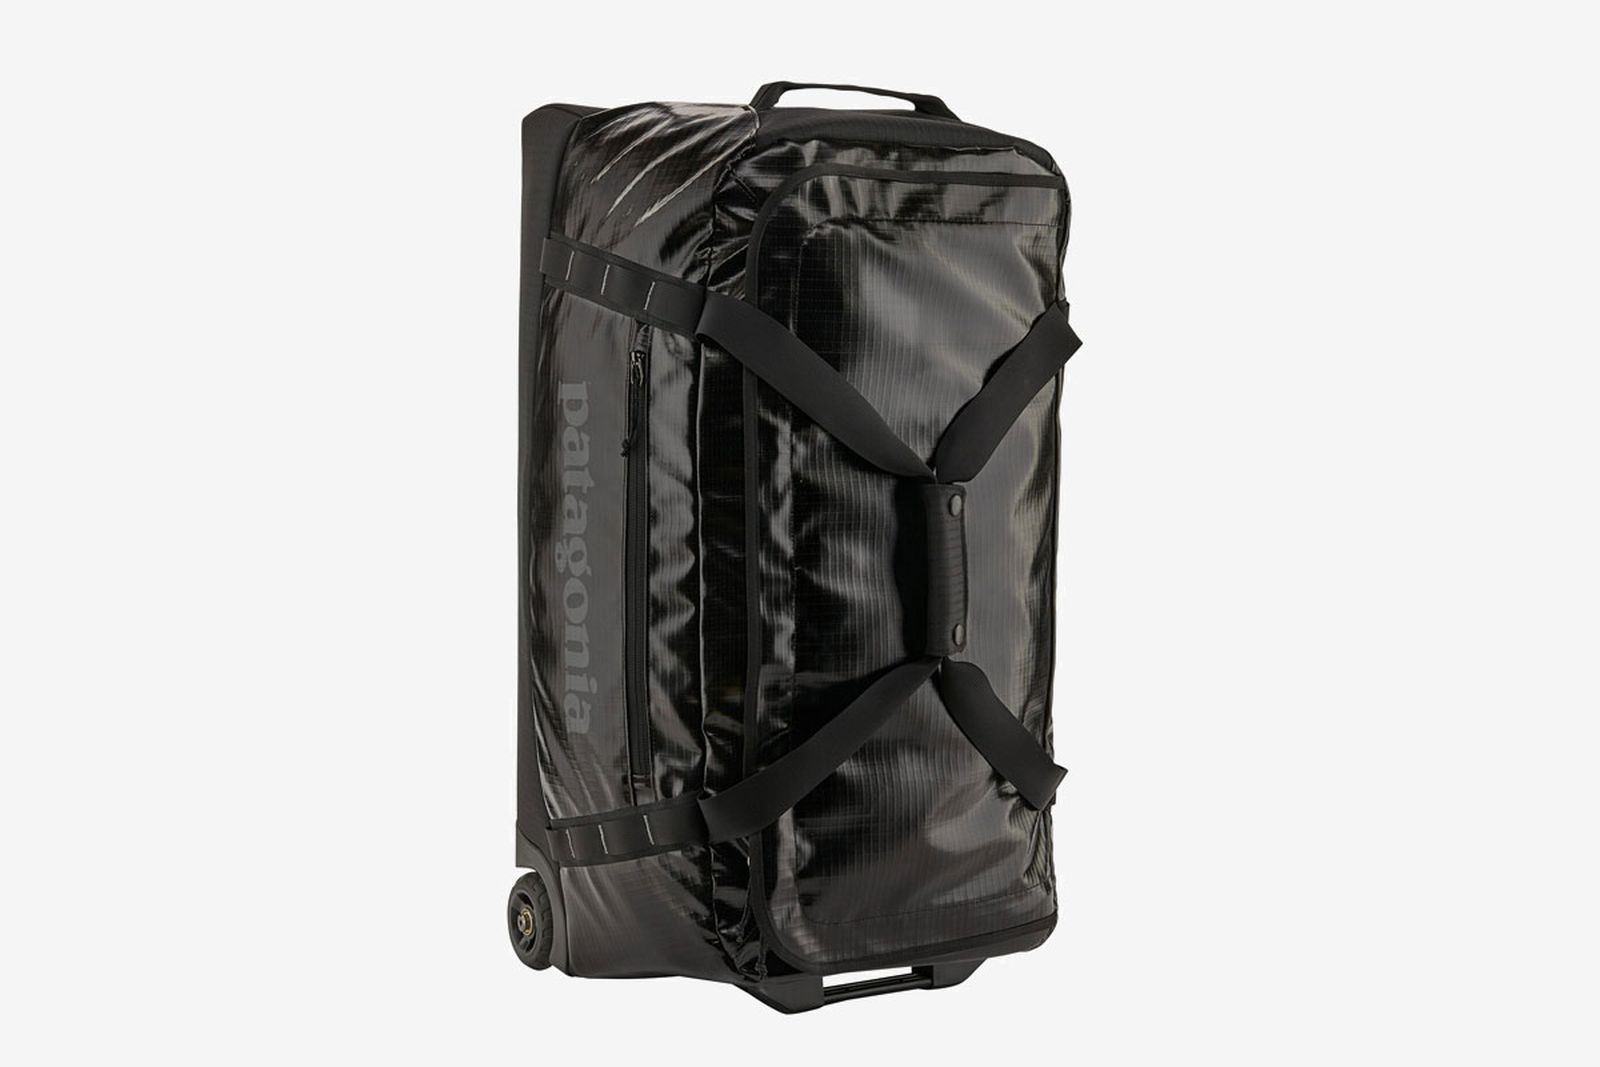 patagonia recycled bags 2